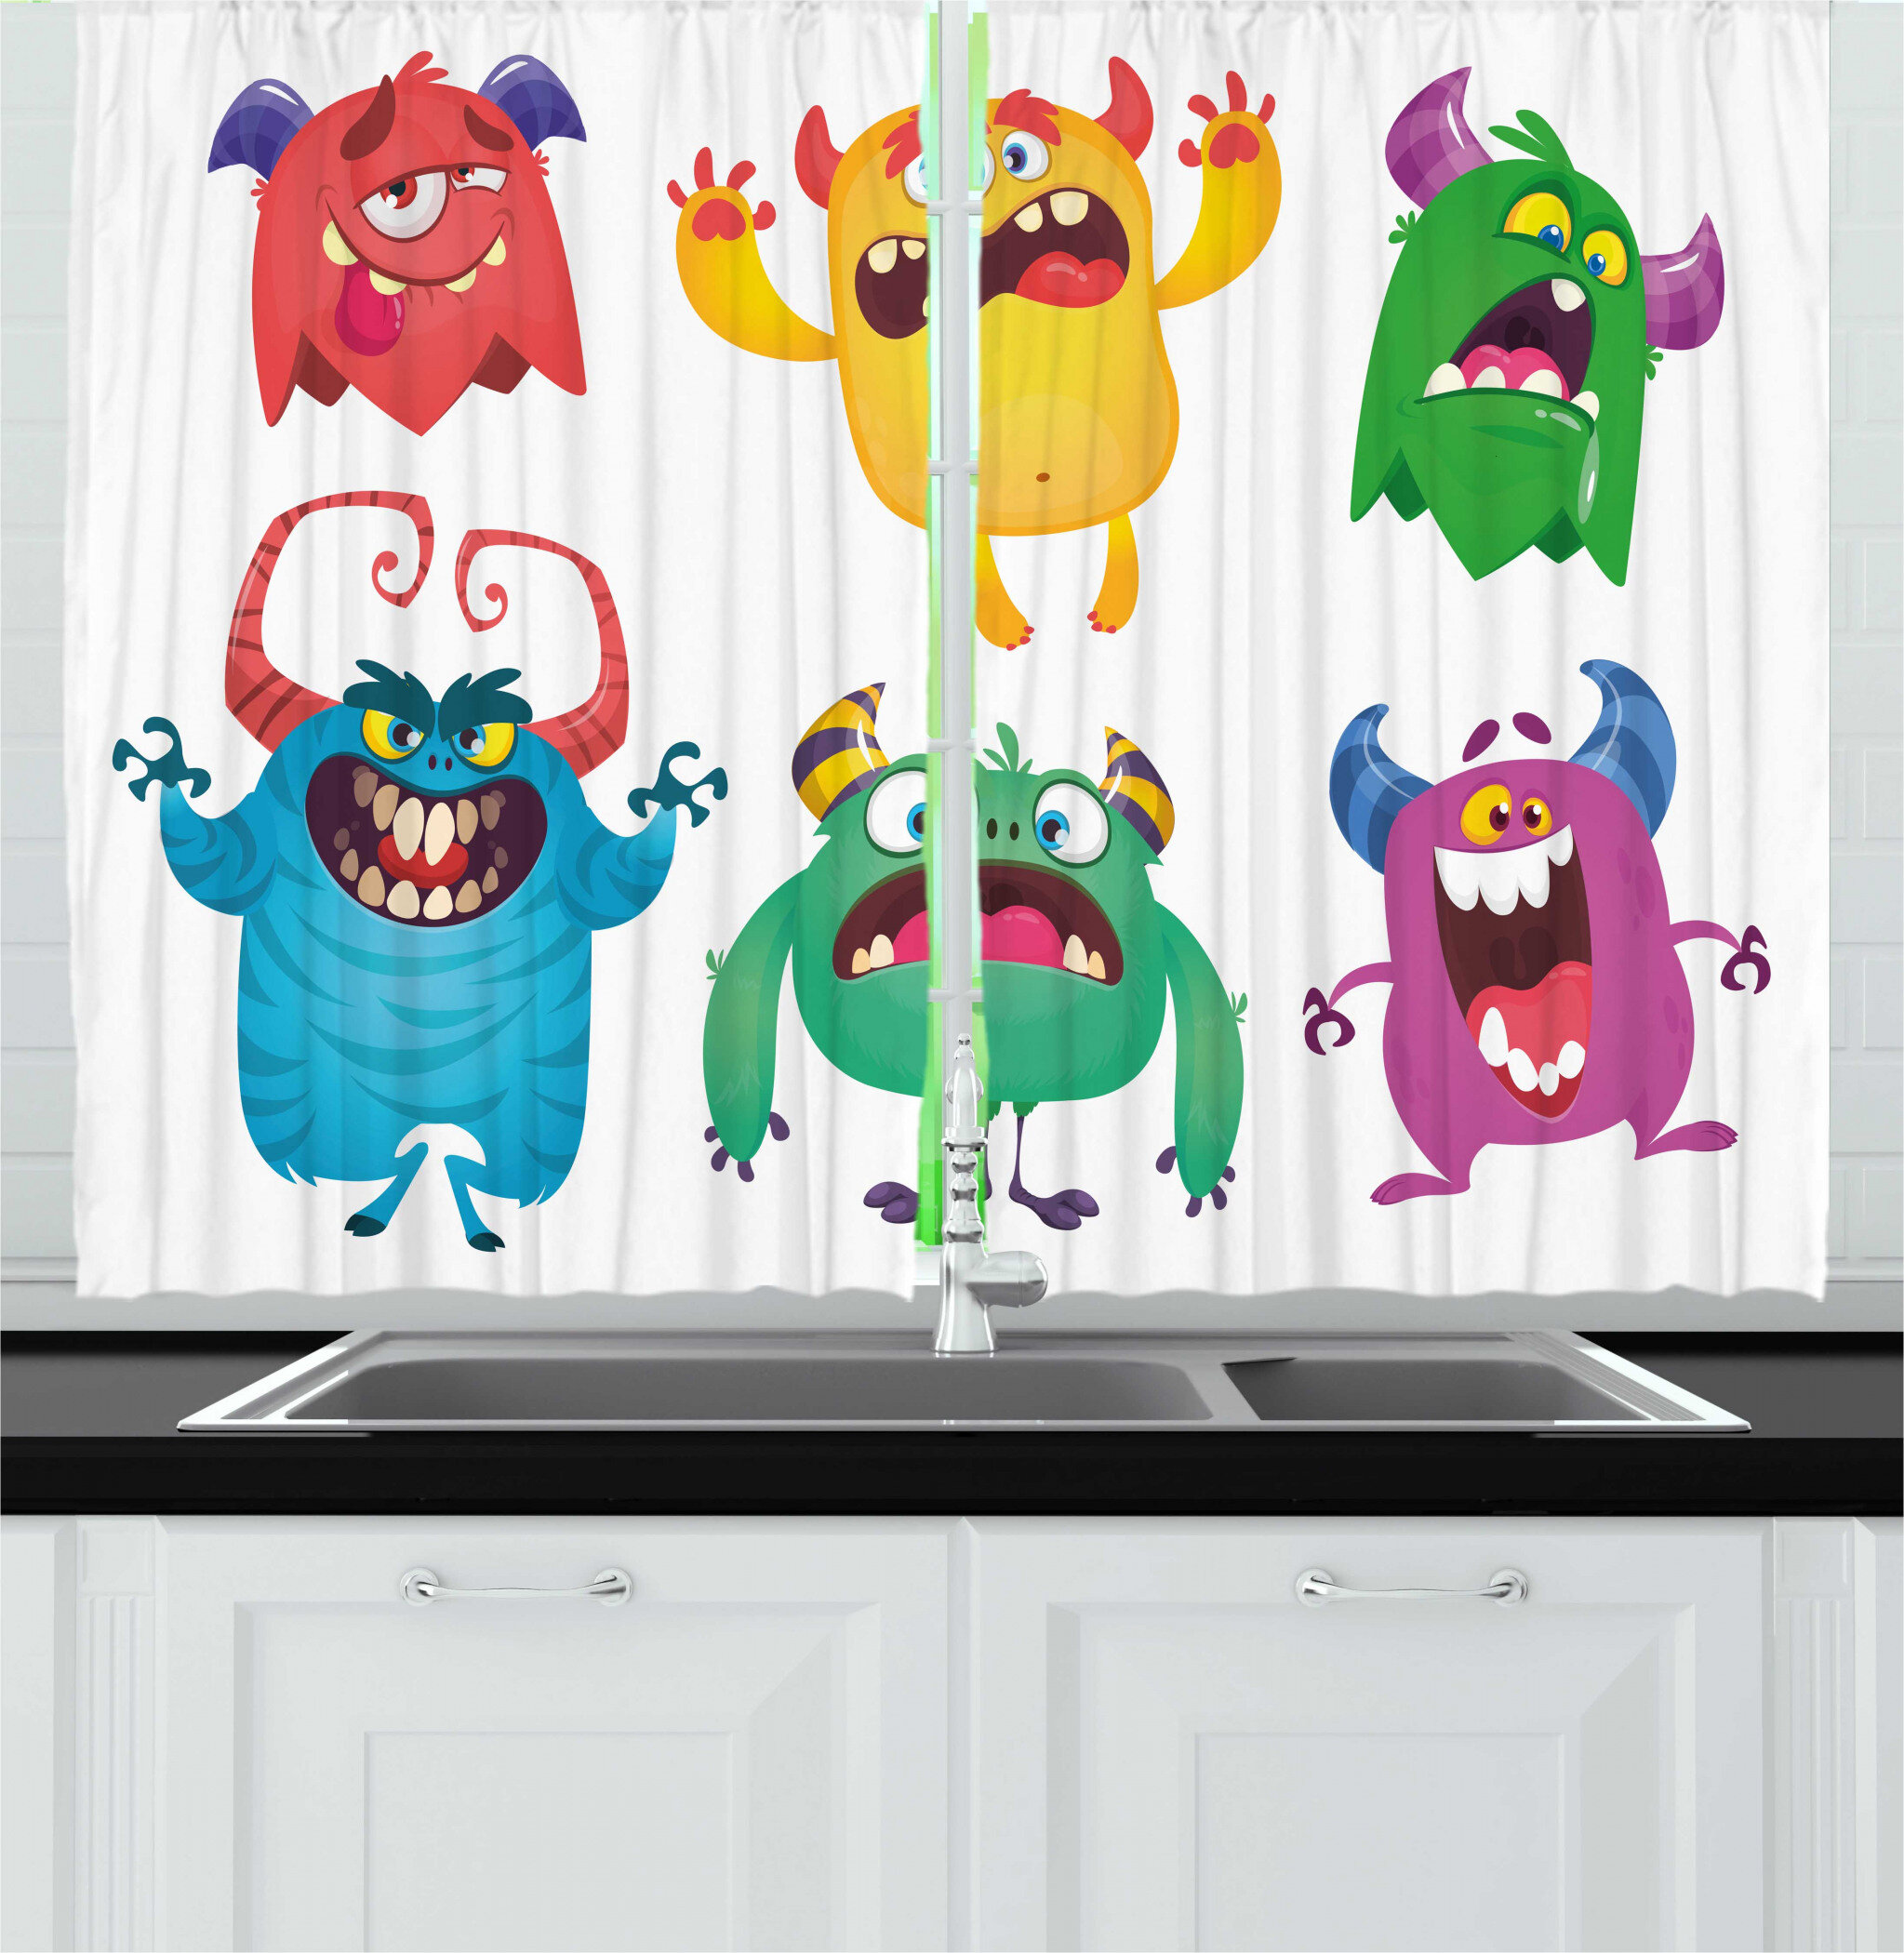 East Urban Home 2 Piece Alien Childish Print Of Funny Monsters Making Whimsical Faces Cartoon On Plain Background Kitchen Curtain Set Wayfair